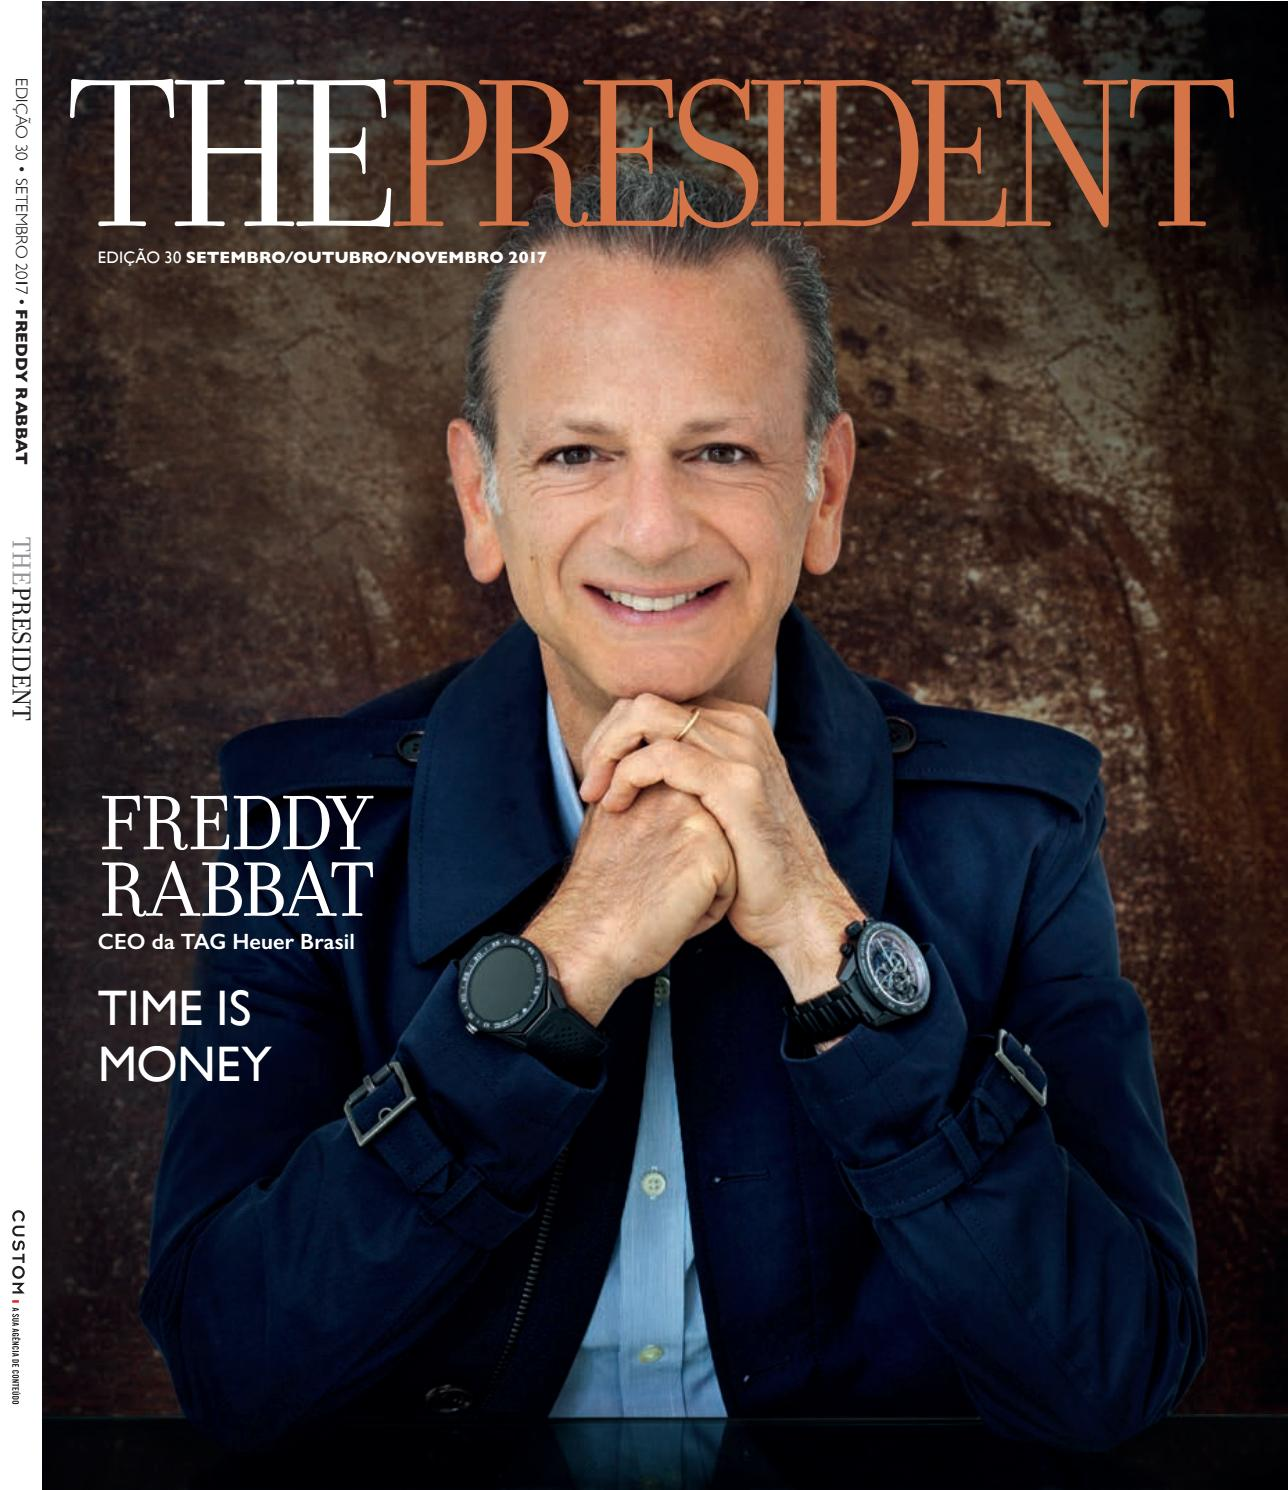 Intimidade Filme Great the president #30the president - issuu